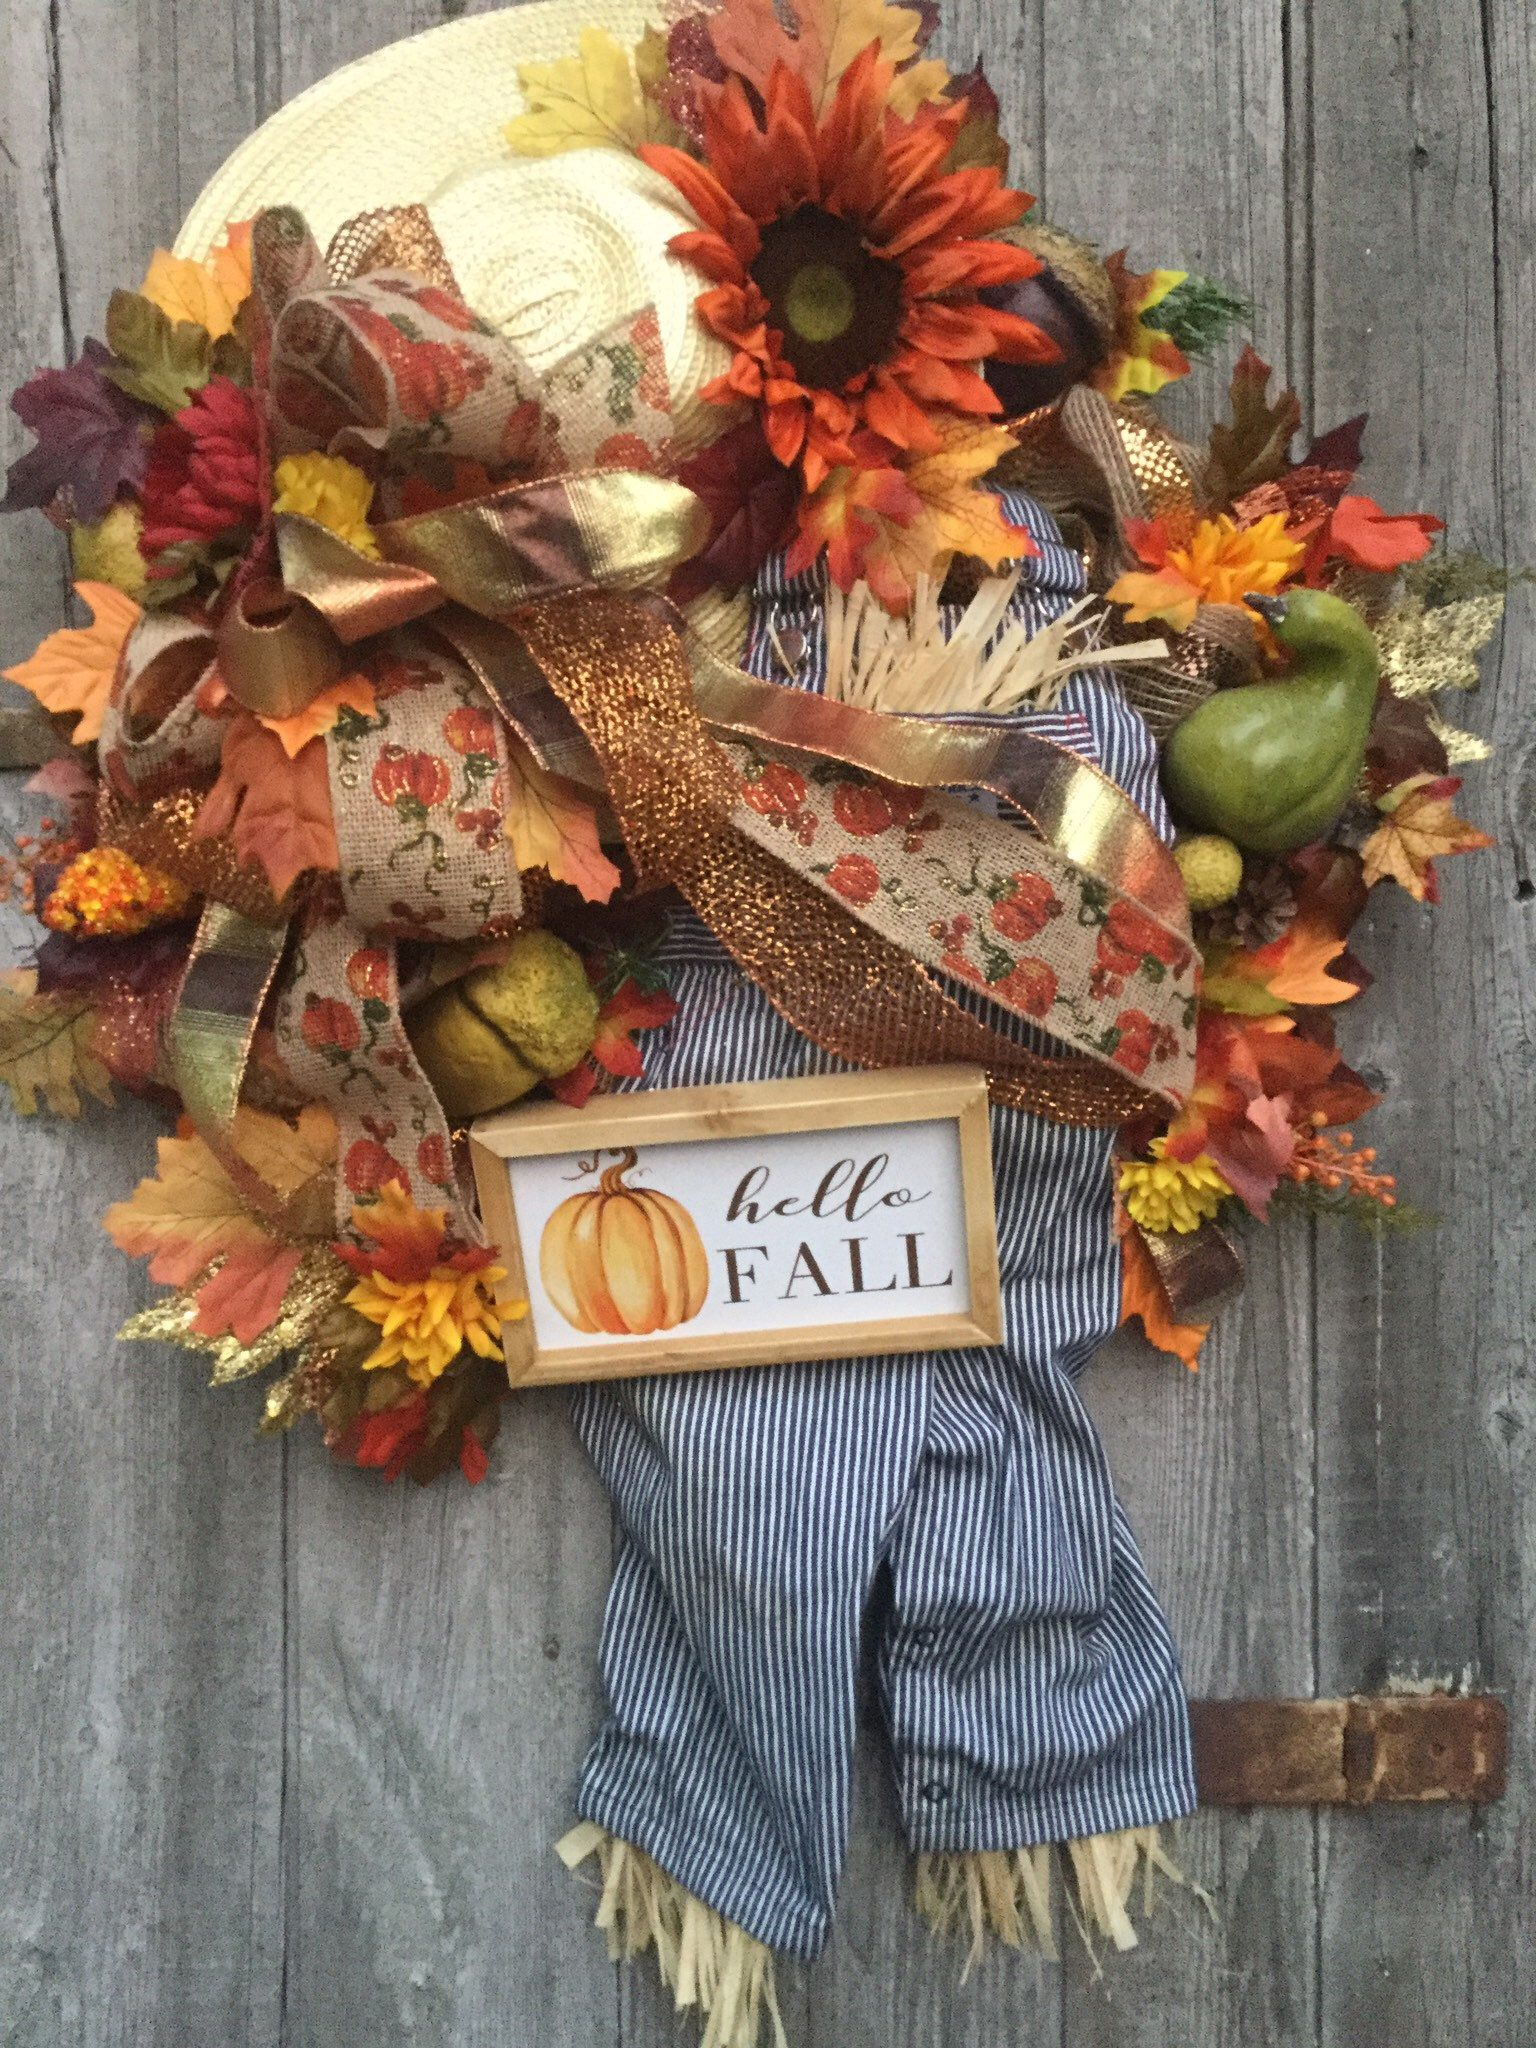 HELLO FALL SCARECROW Fall large wreath- leaves, flowers, scarecrow wreath- Thanksgiving wreath #scarecrowwreath Excited to share this item from my #etsy shop: HELLO FALL SCARECROW Fall large wreath- leaves, flowers, scarecrow wreath- Thanksgiving wreath #scarecrowwreath